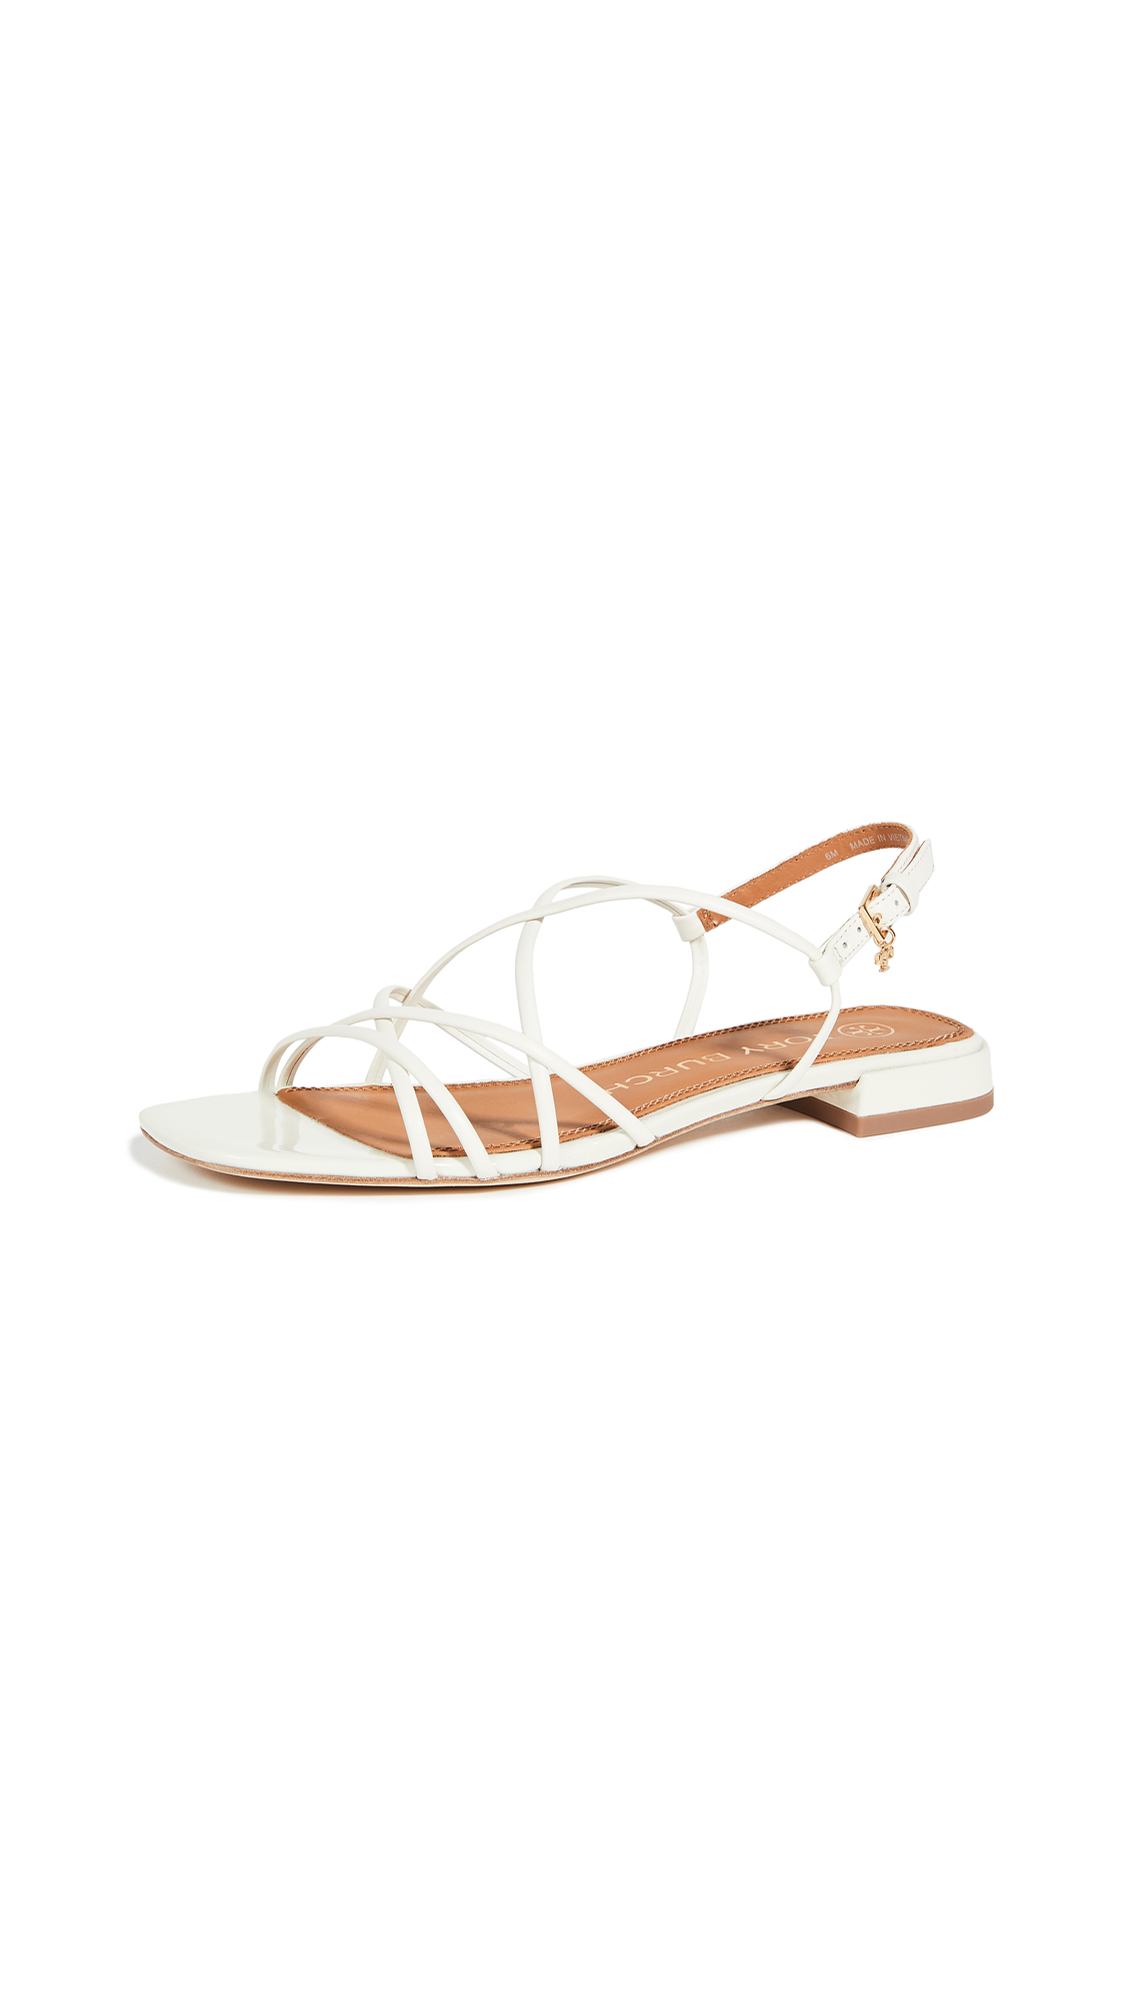 Tory Burch 15mm Penelope Sandals